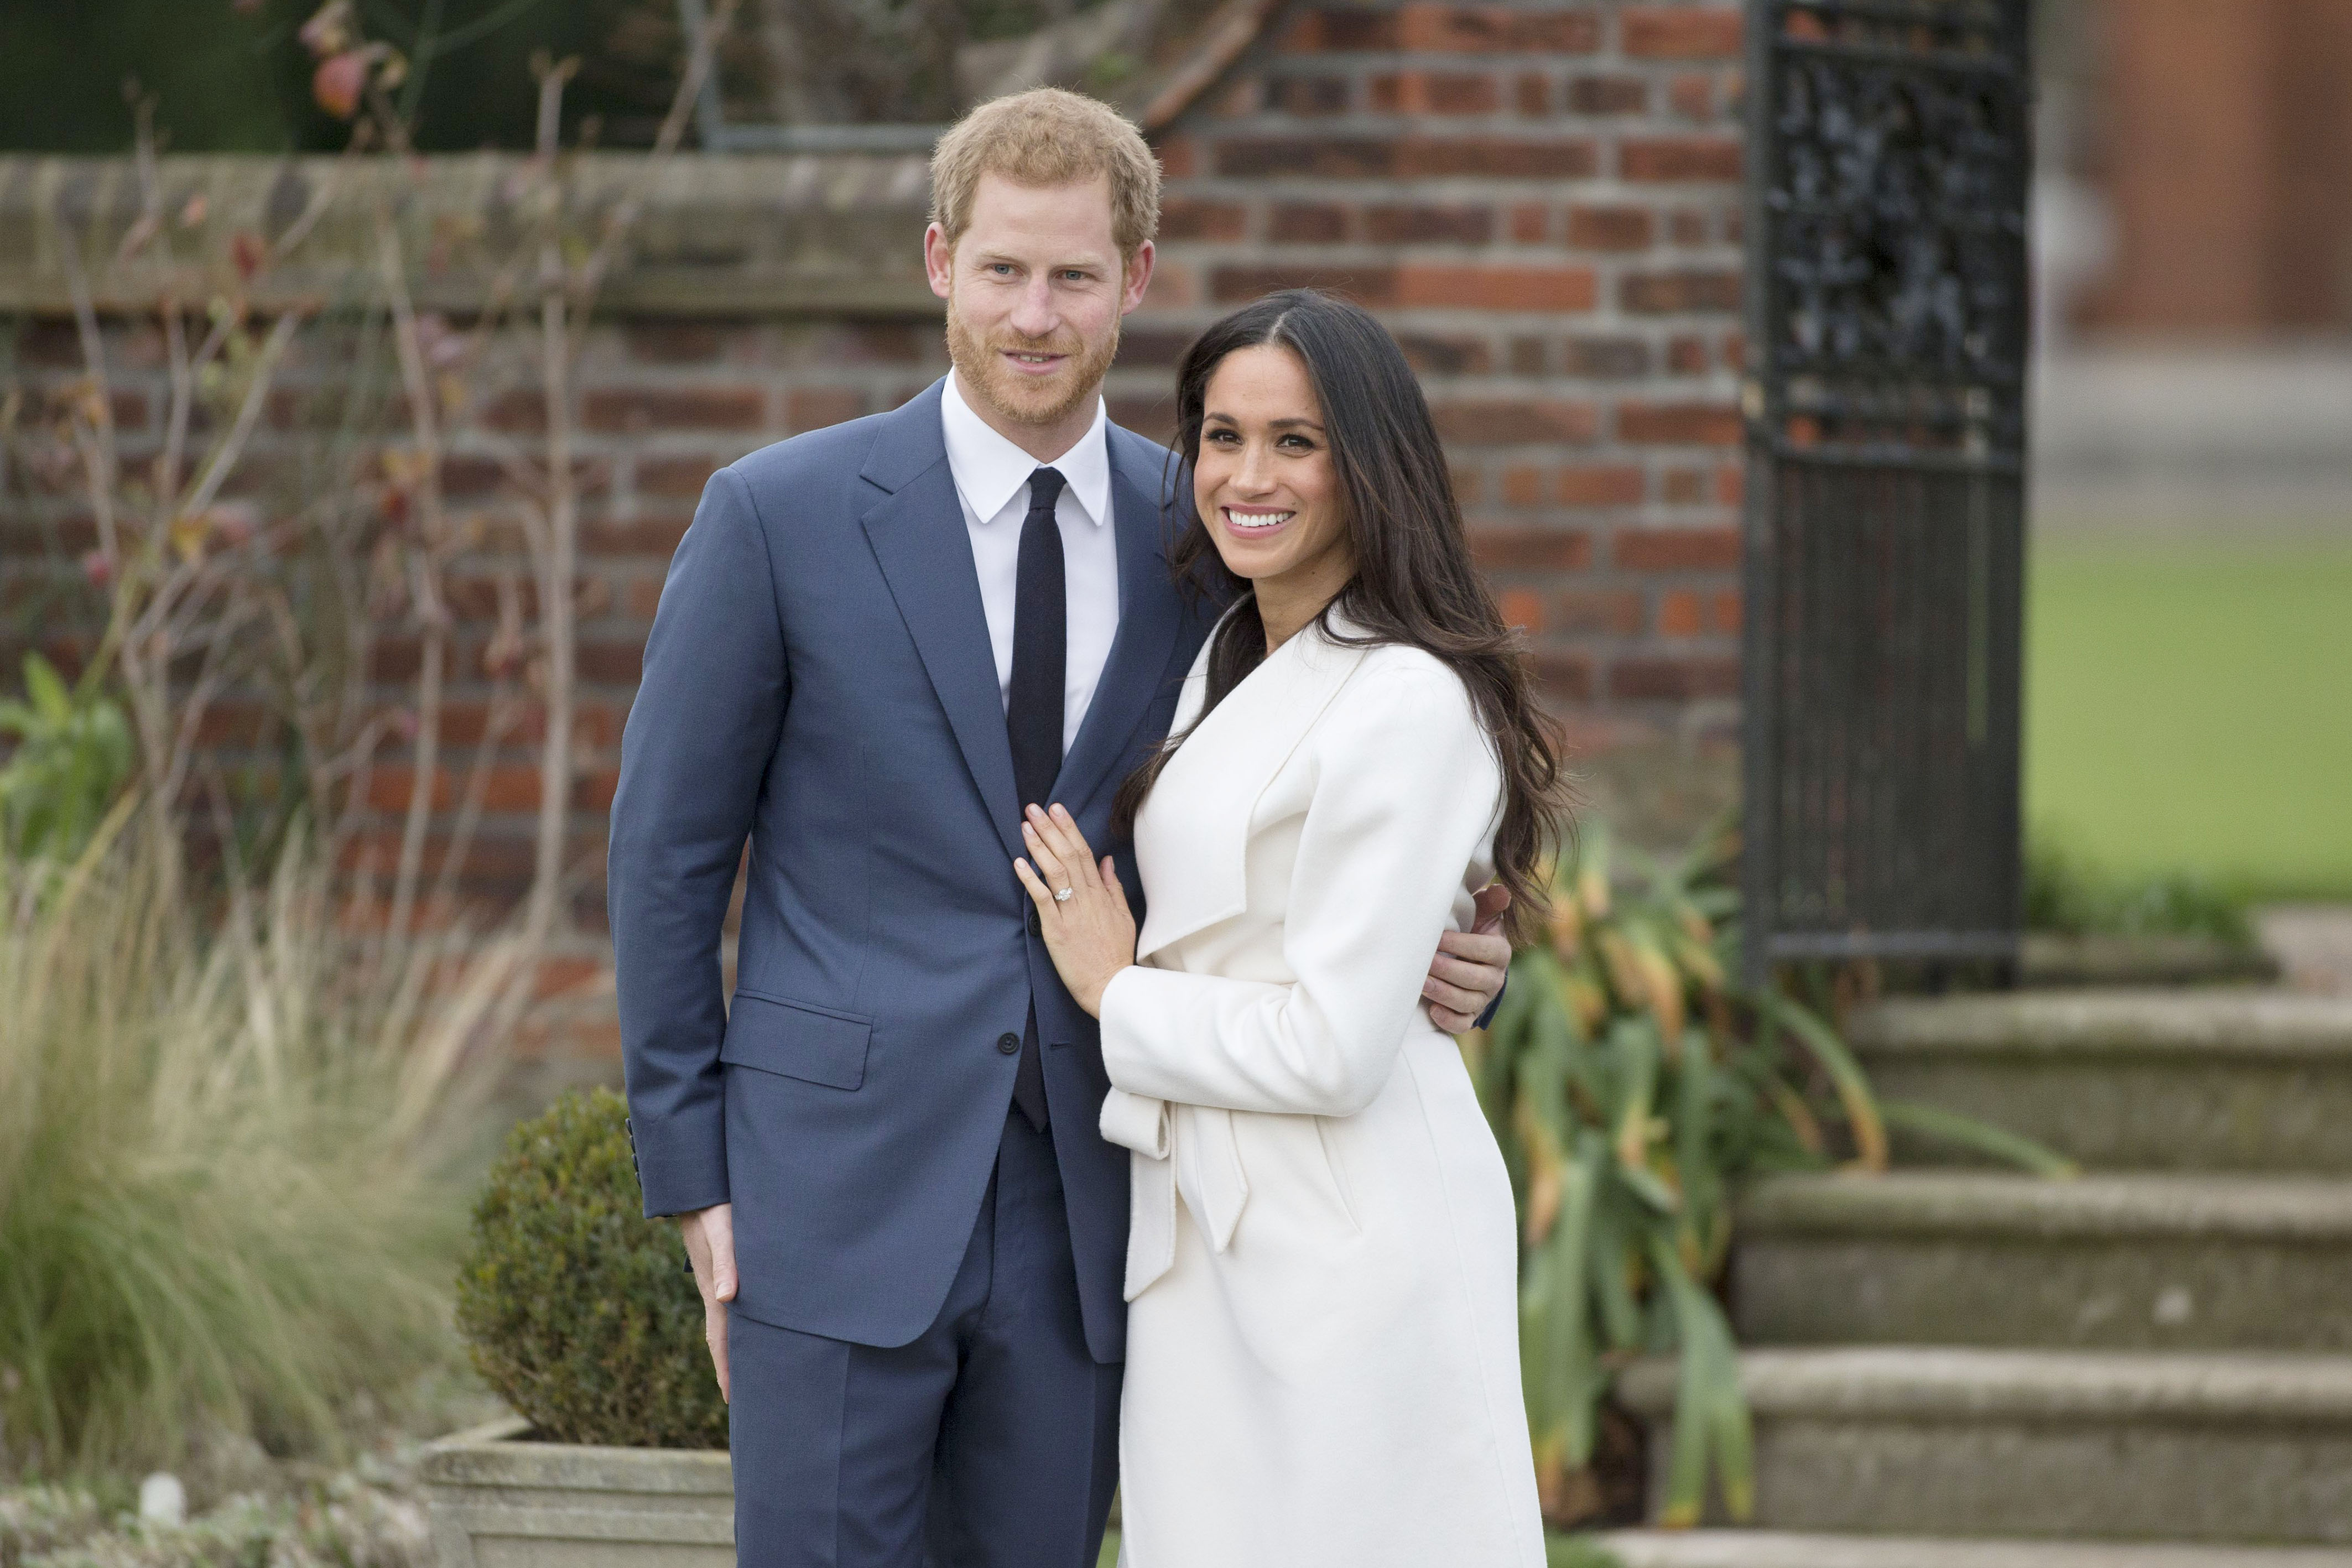 Prince Harry and Meghan Markle engagement announcement, Kensington Palace